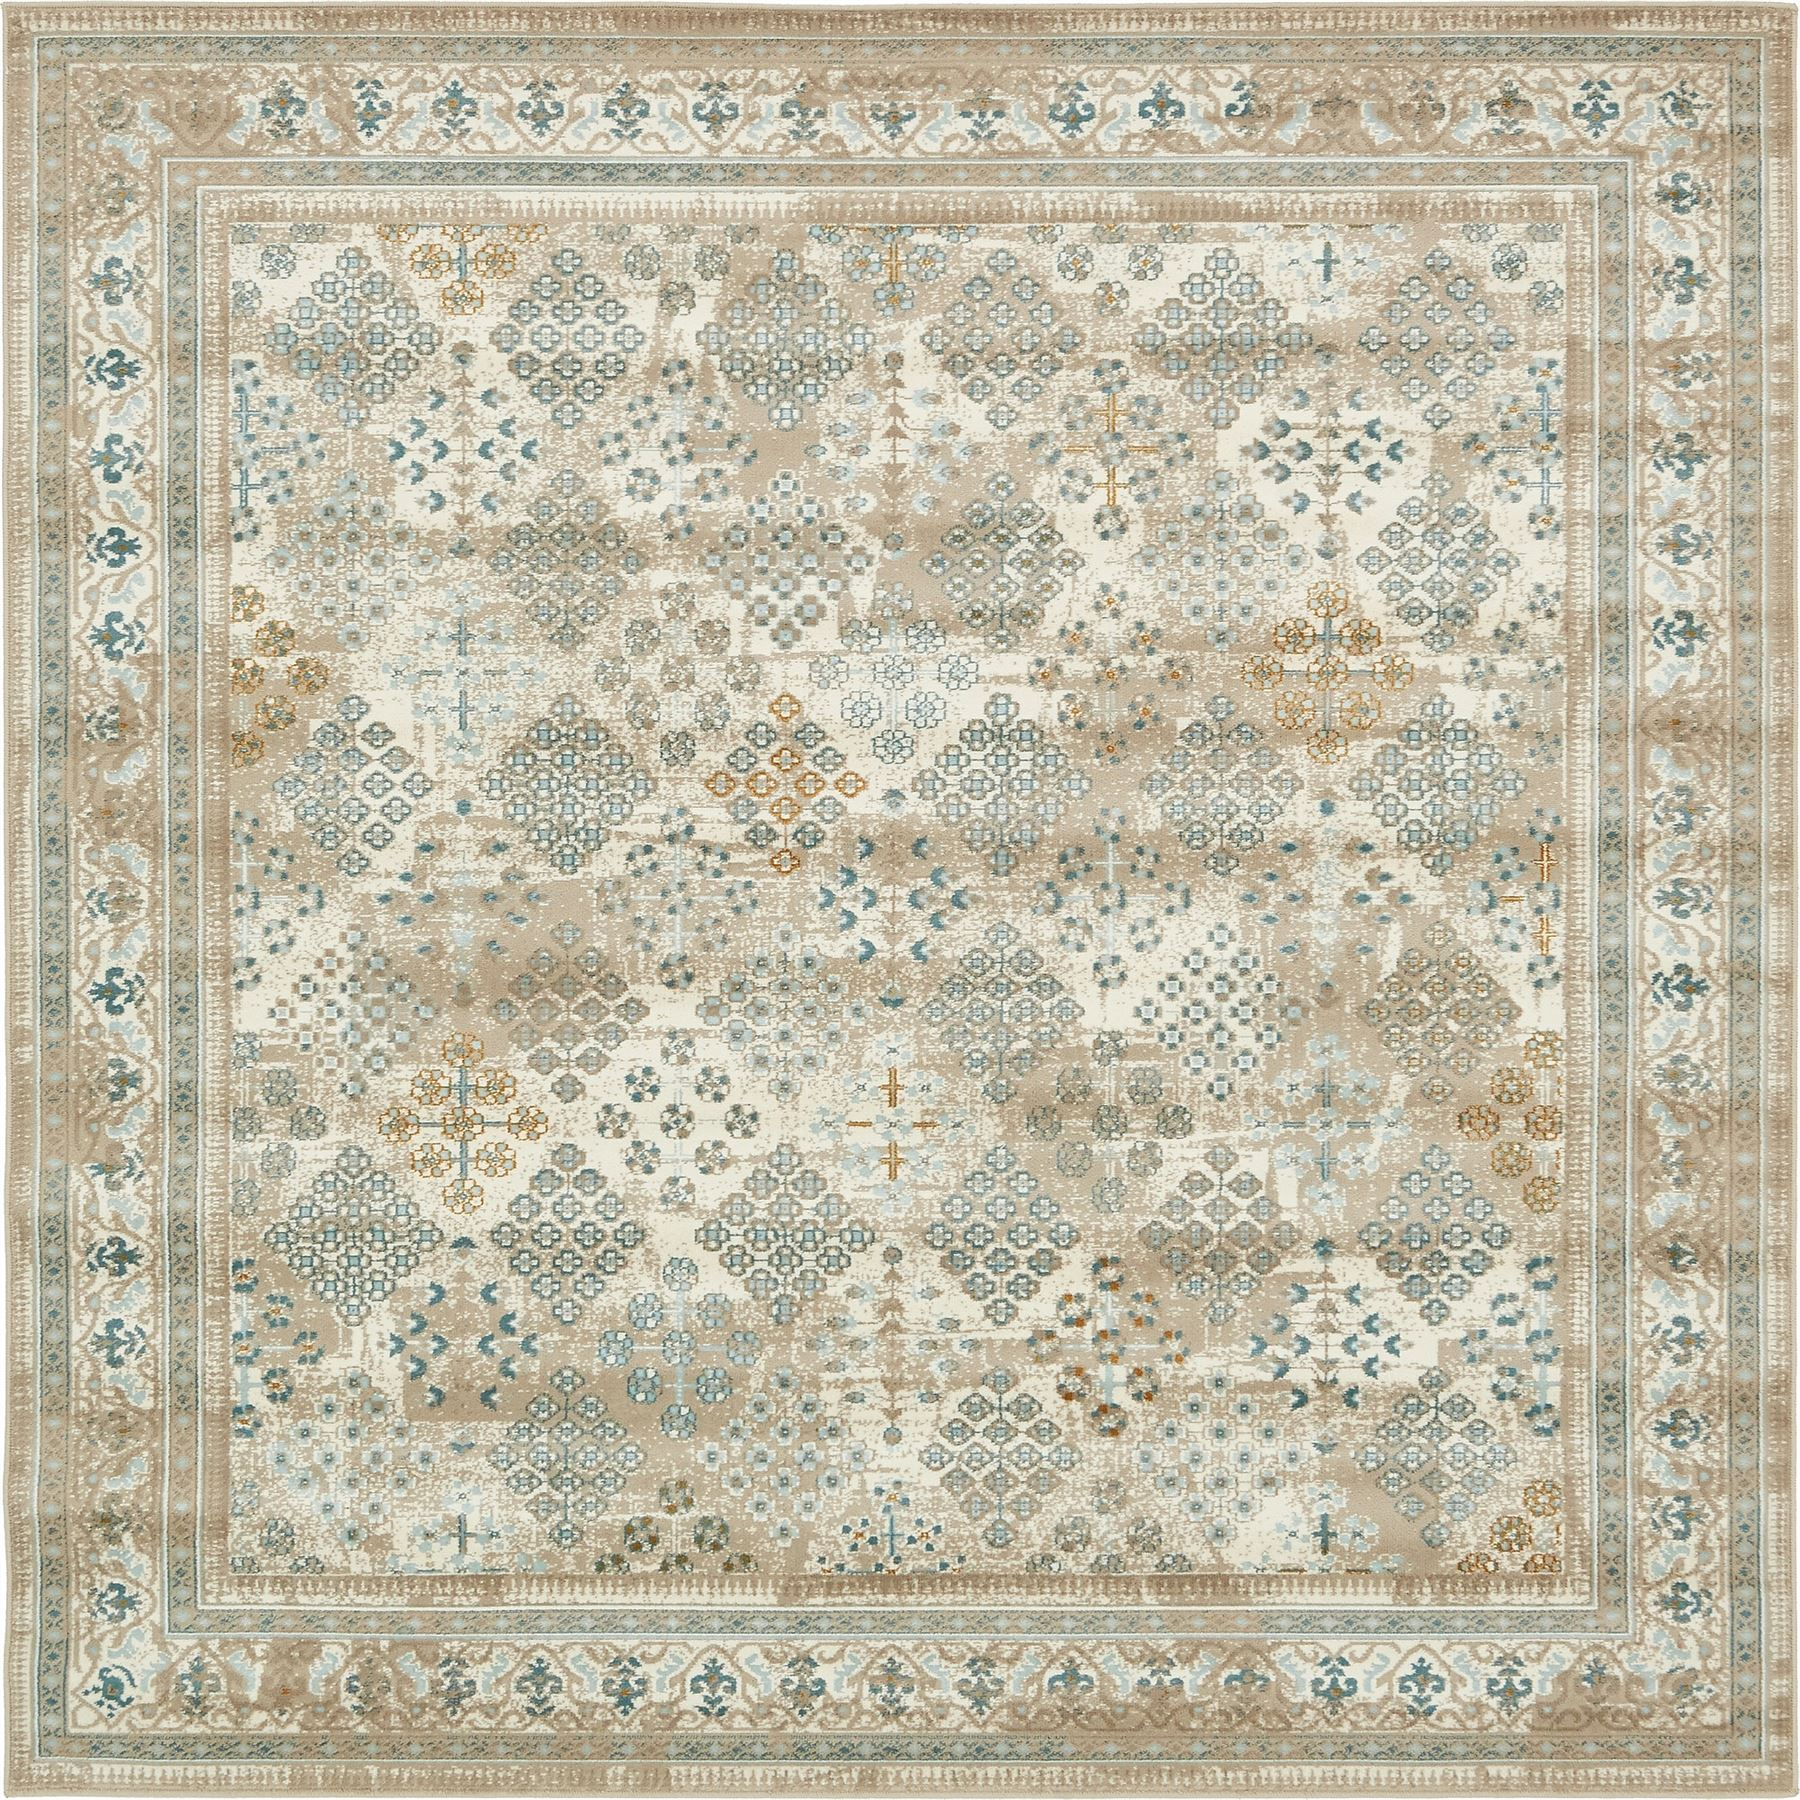 Modern Rugs Vintage: Area Rug Floor Carpet Floral Traditional Rugs Vintage